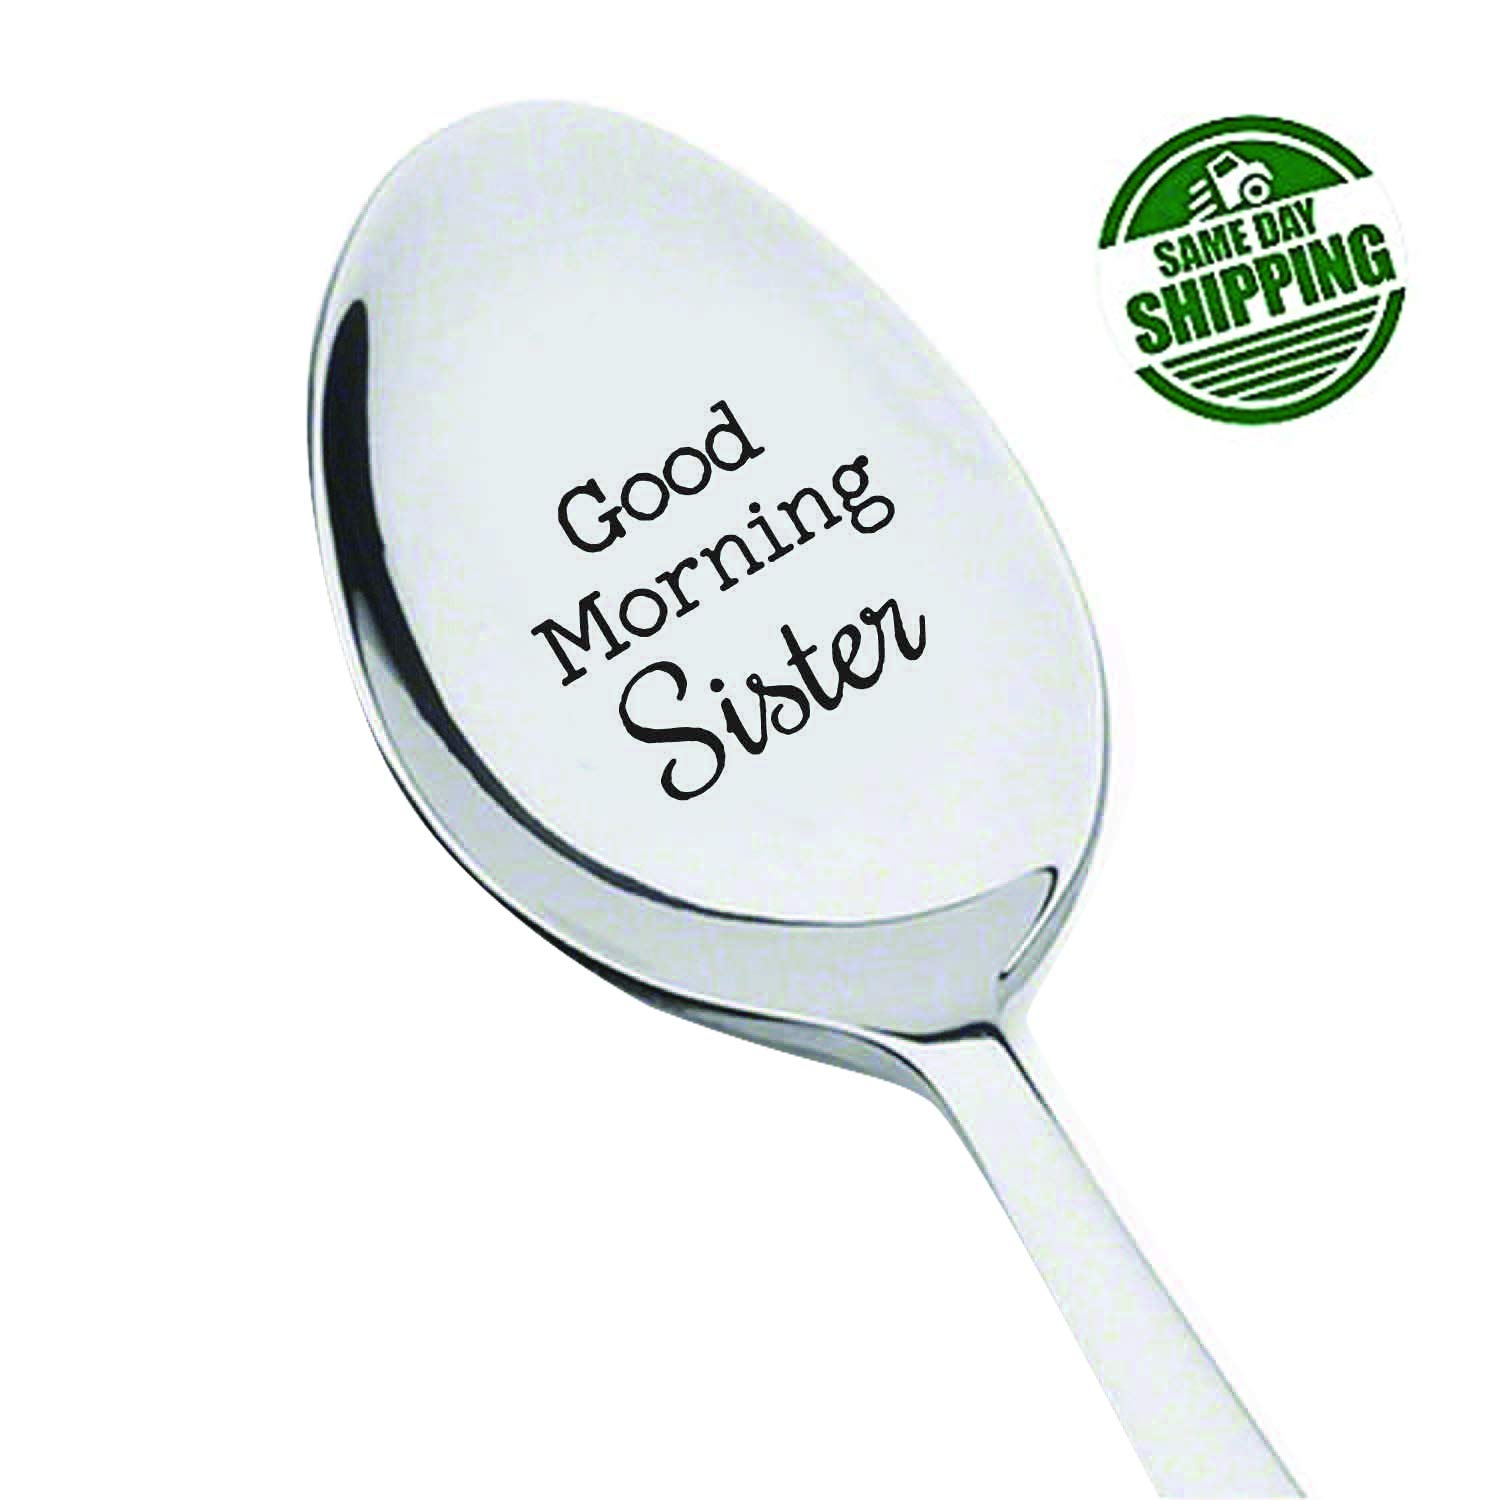 Amazoncom Good Morning Sister Spoon Sister Gift Sister In Law